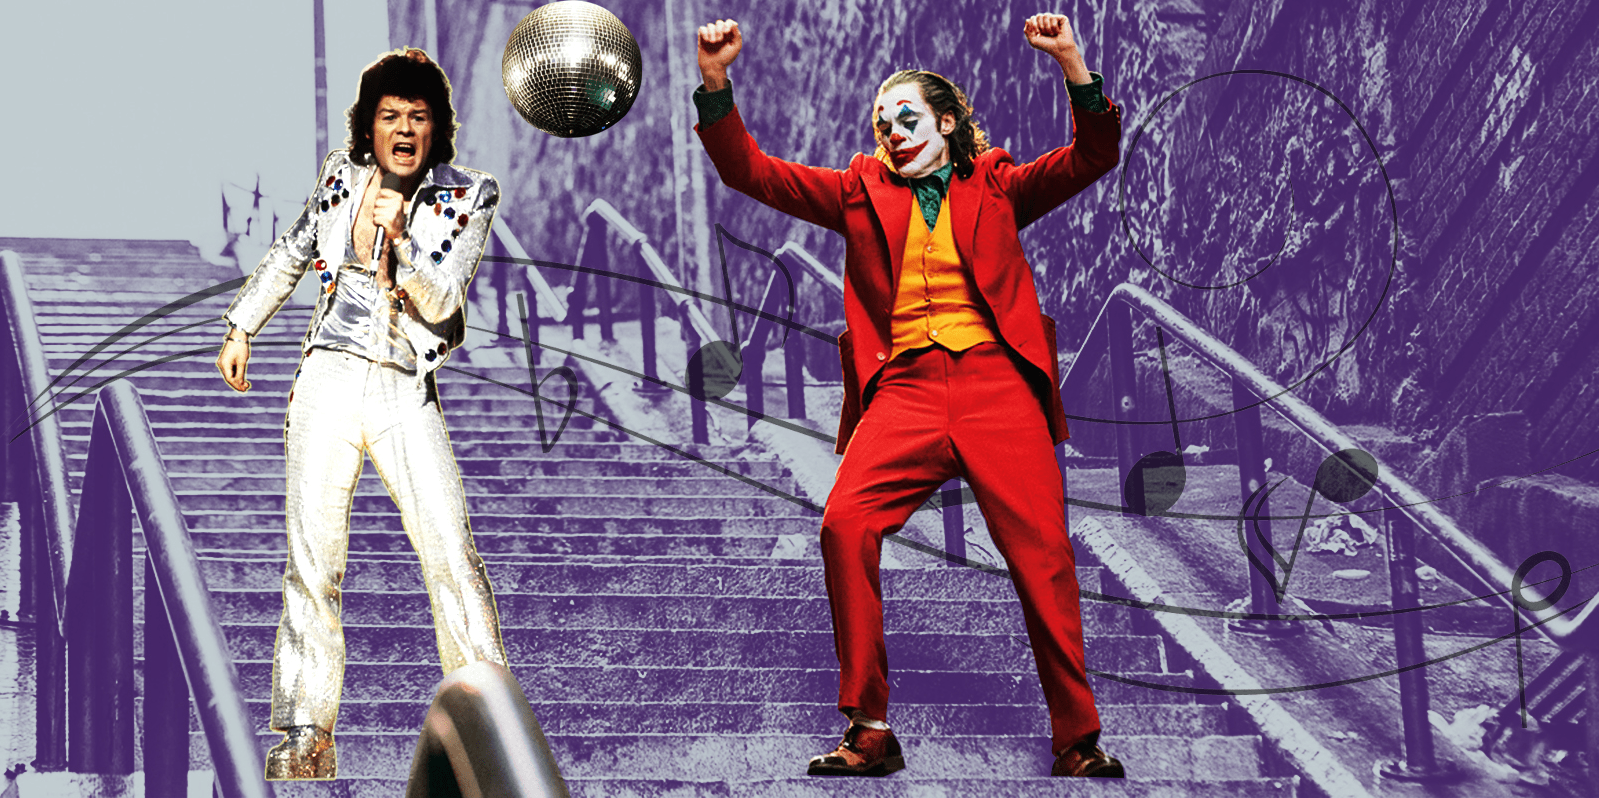 From Gary Glitter to the Incel Rebellion, here's how the Joker movie is the subject of controversy